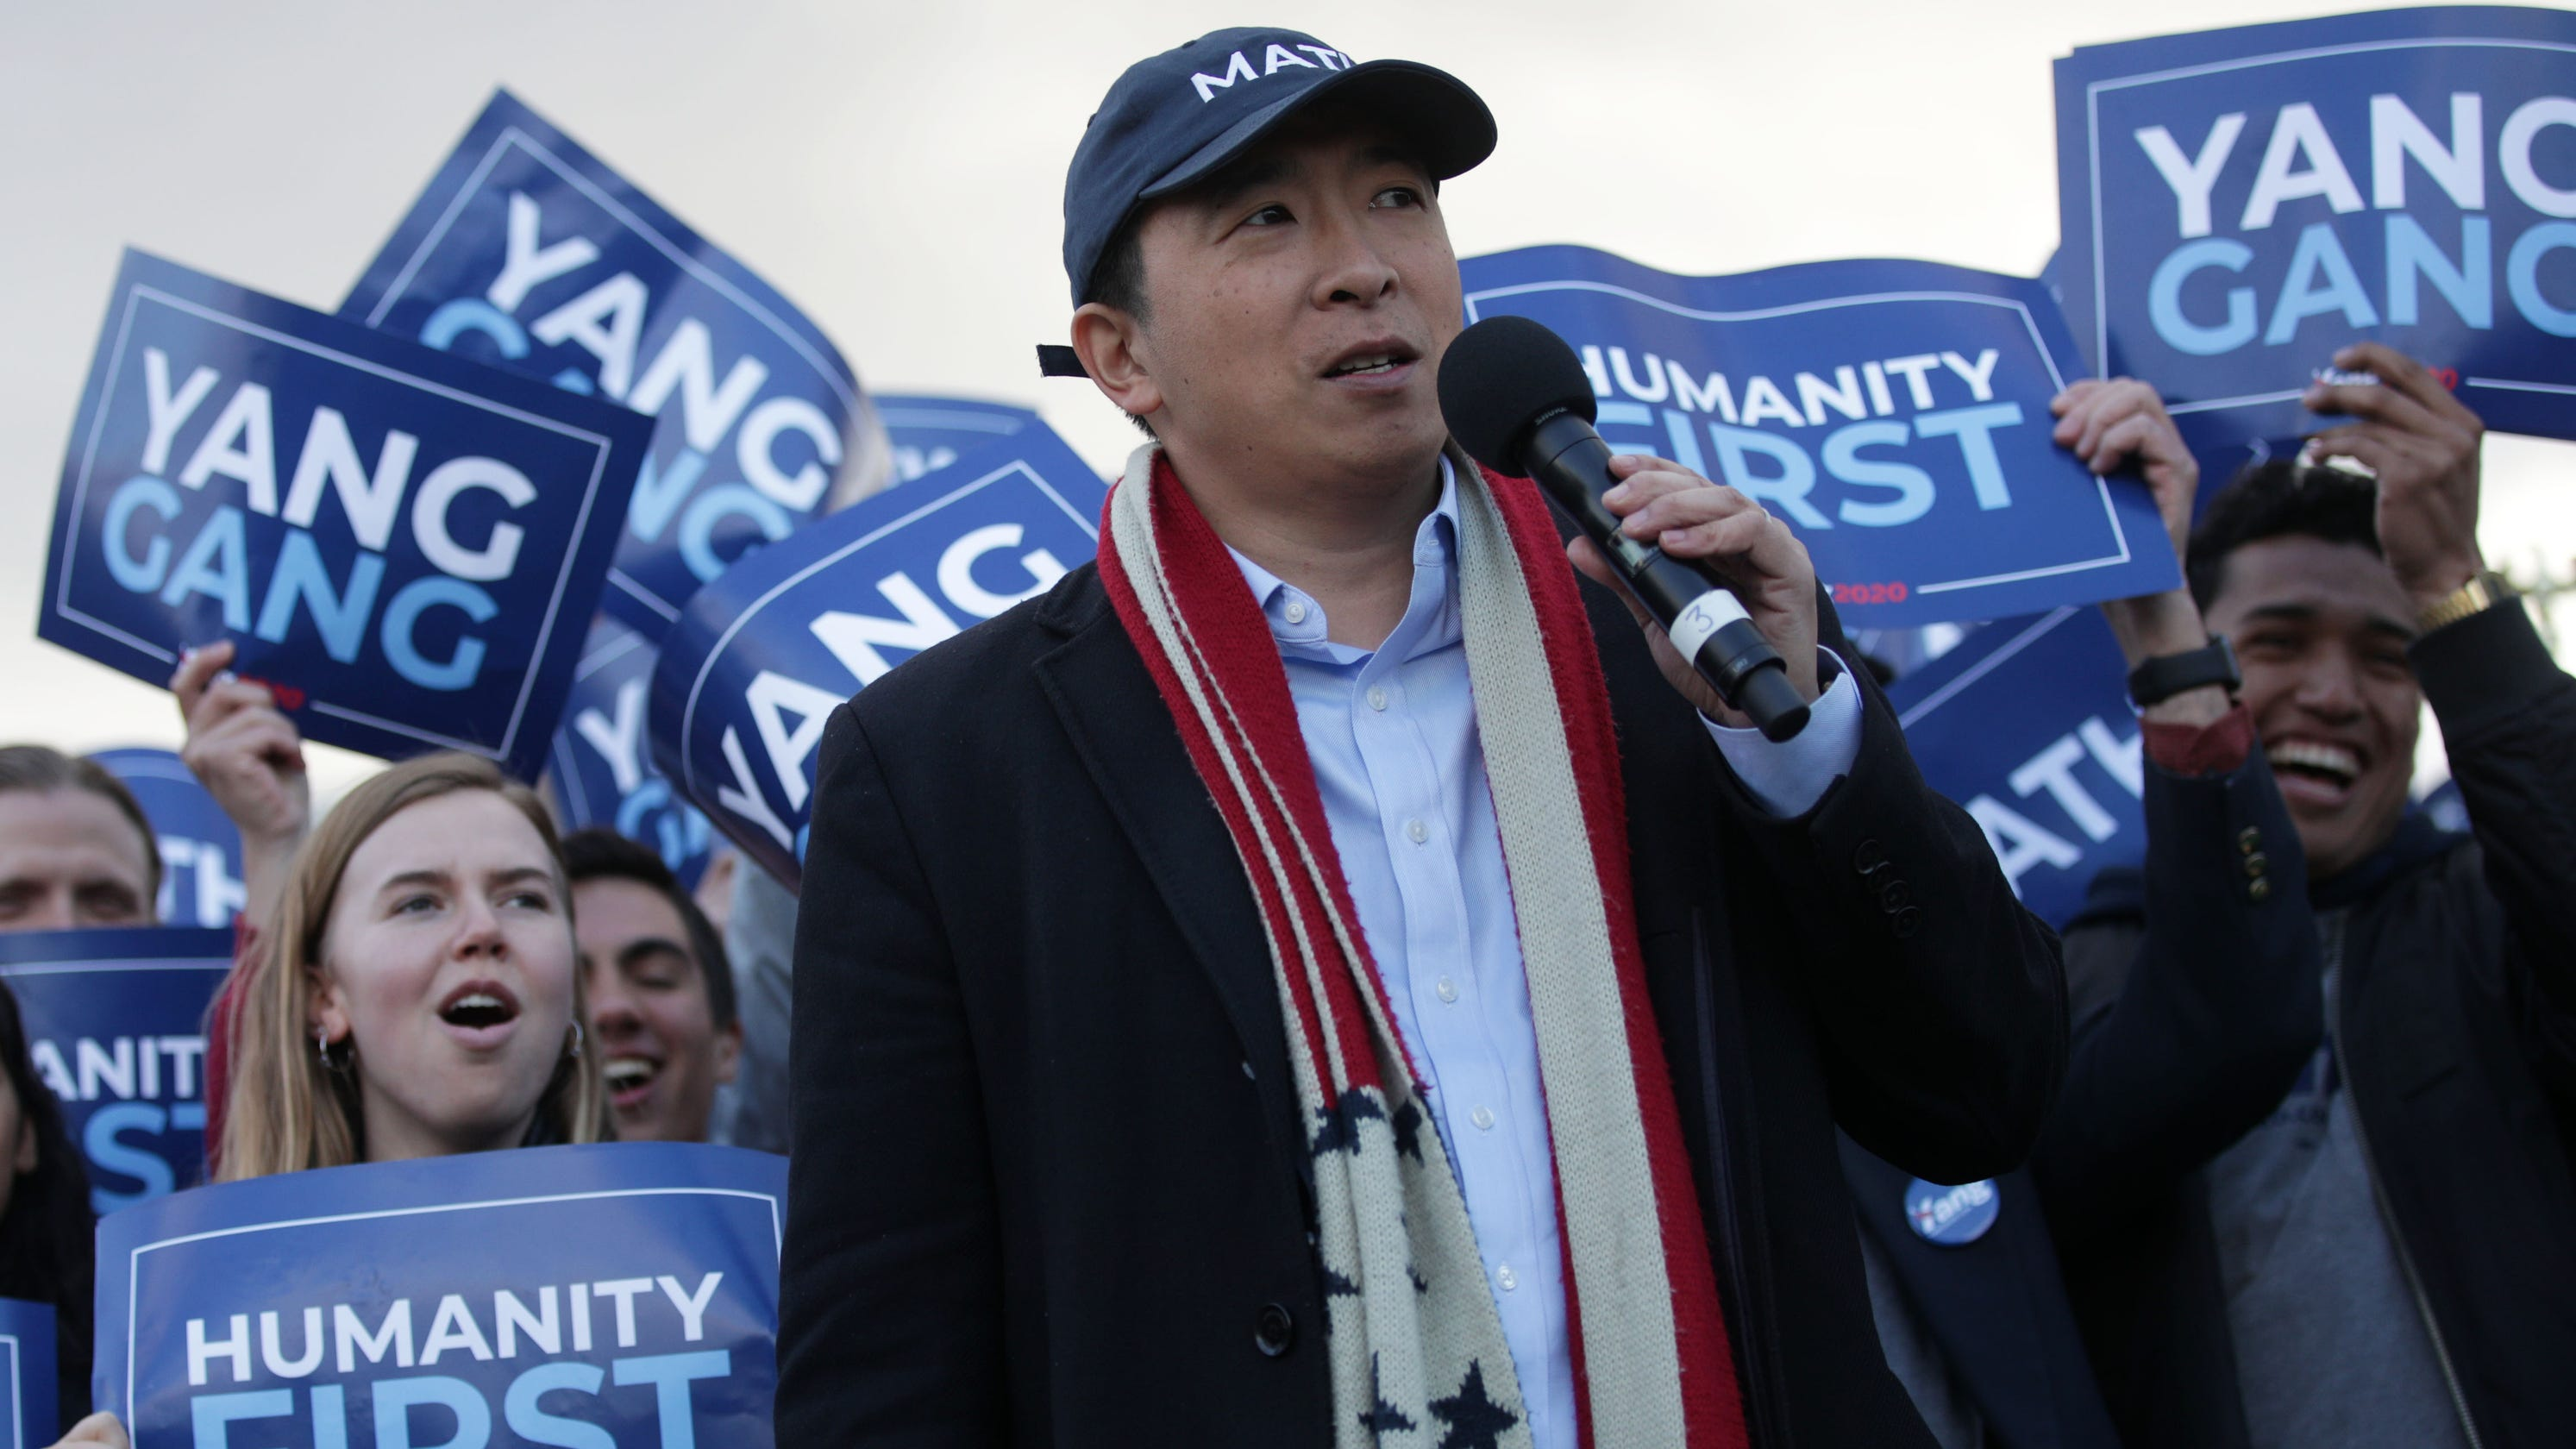 Me And My Big Ideas Event Salt Lake City 2020 Yang, Williamson, Sanders: The 2020 candidates standing out to readers